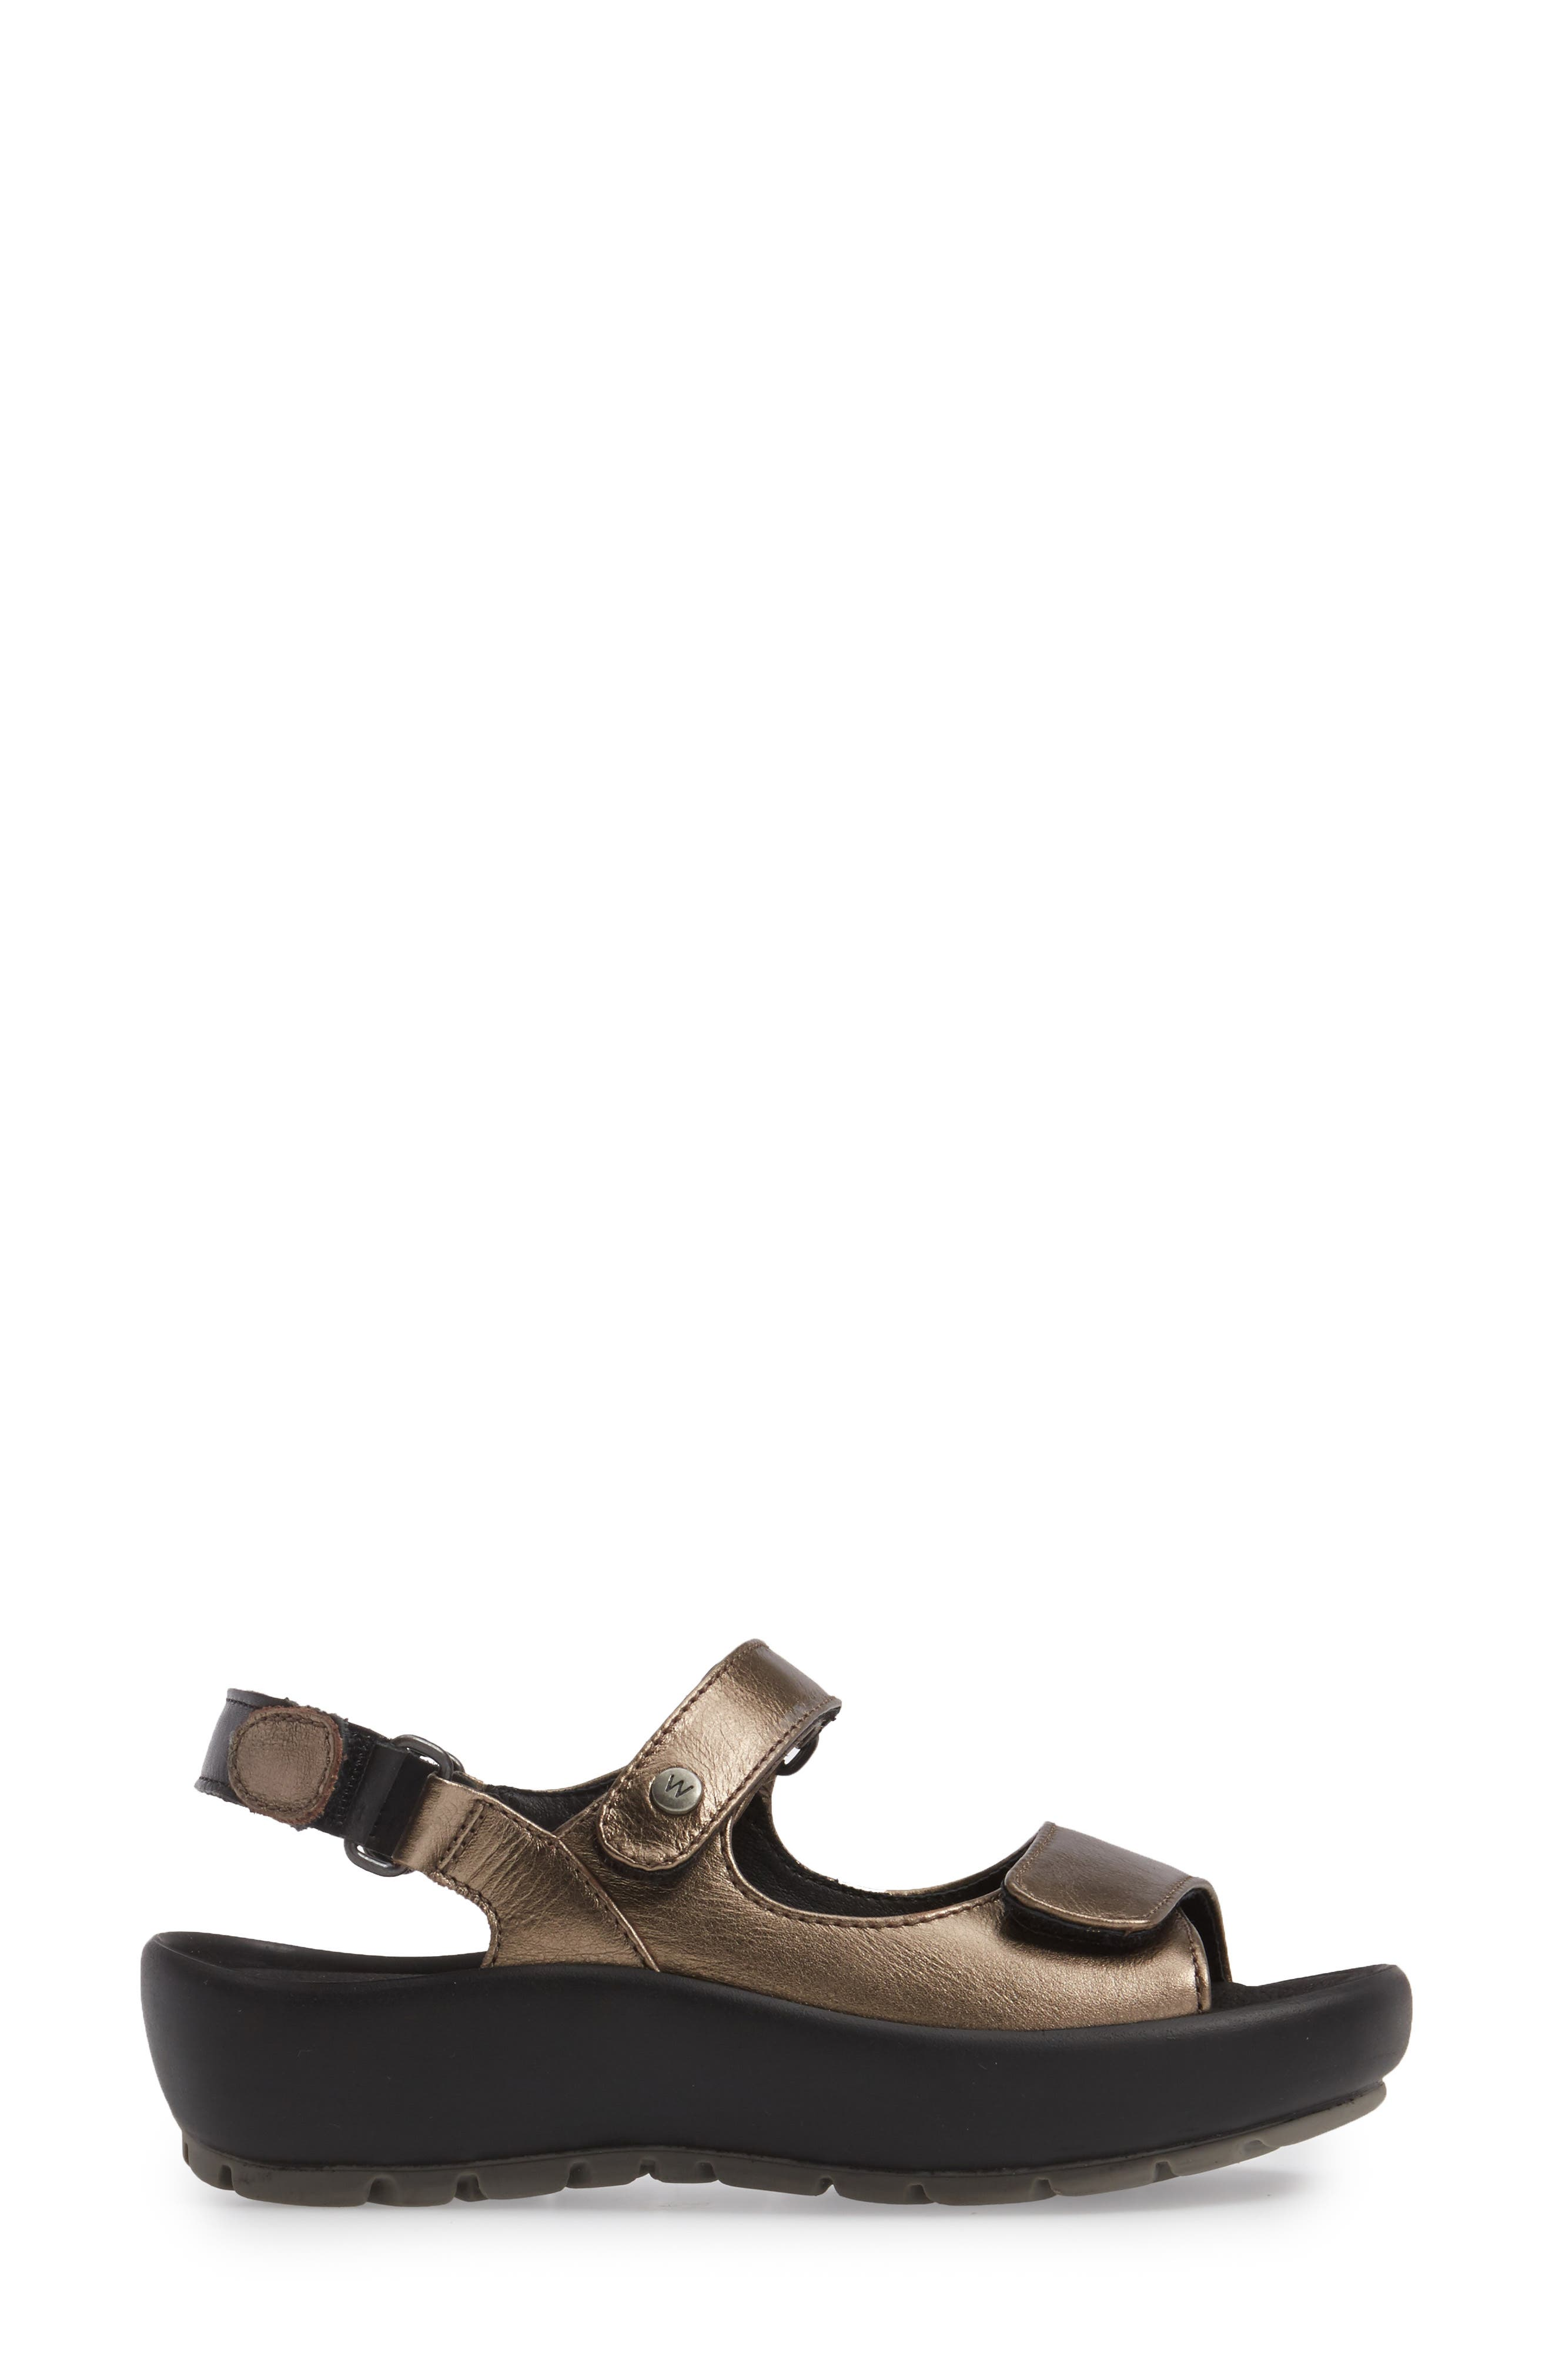 Rio Sandal,                             Alternate thumbnail 3, color,                             Bronze Metallic Leather